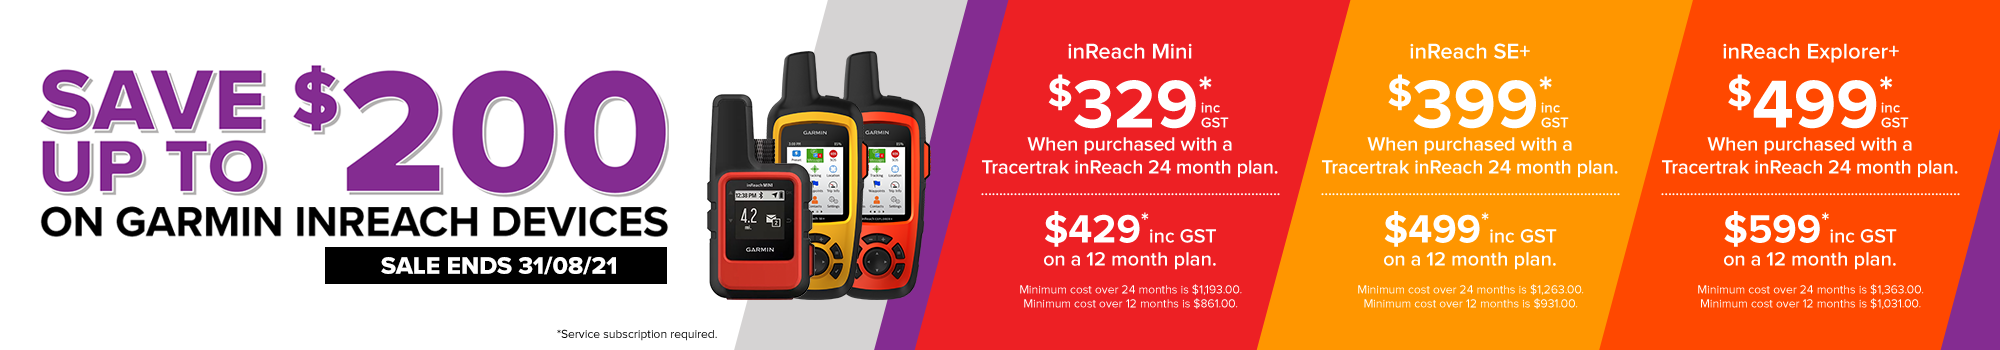 save up to $200 on garmin inreach devices when purchased with a tracertrak plan promo extend